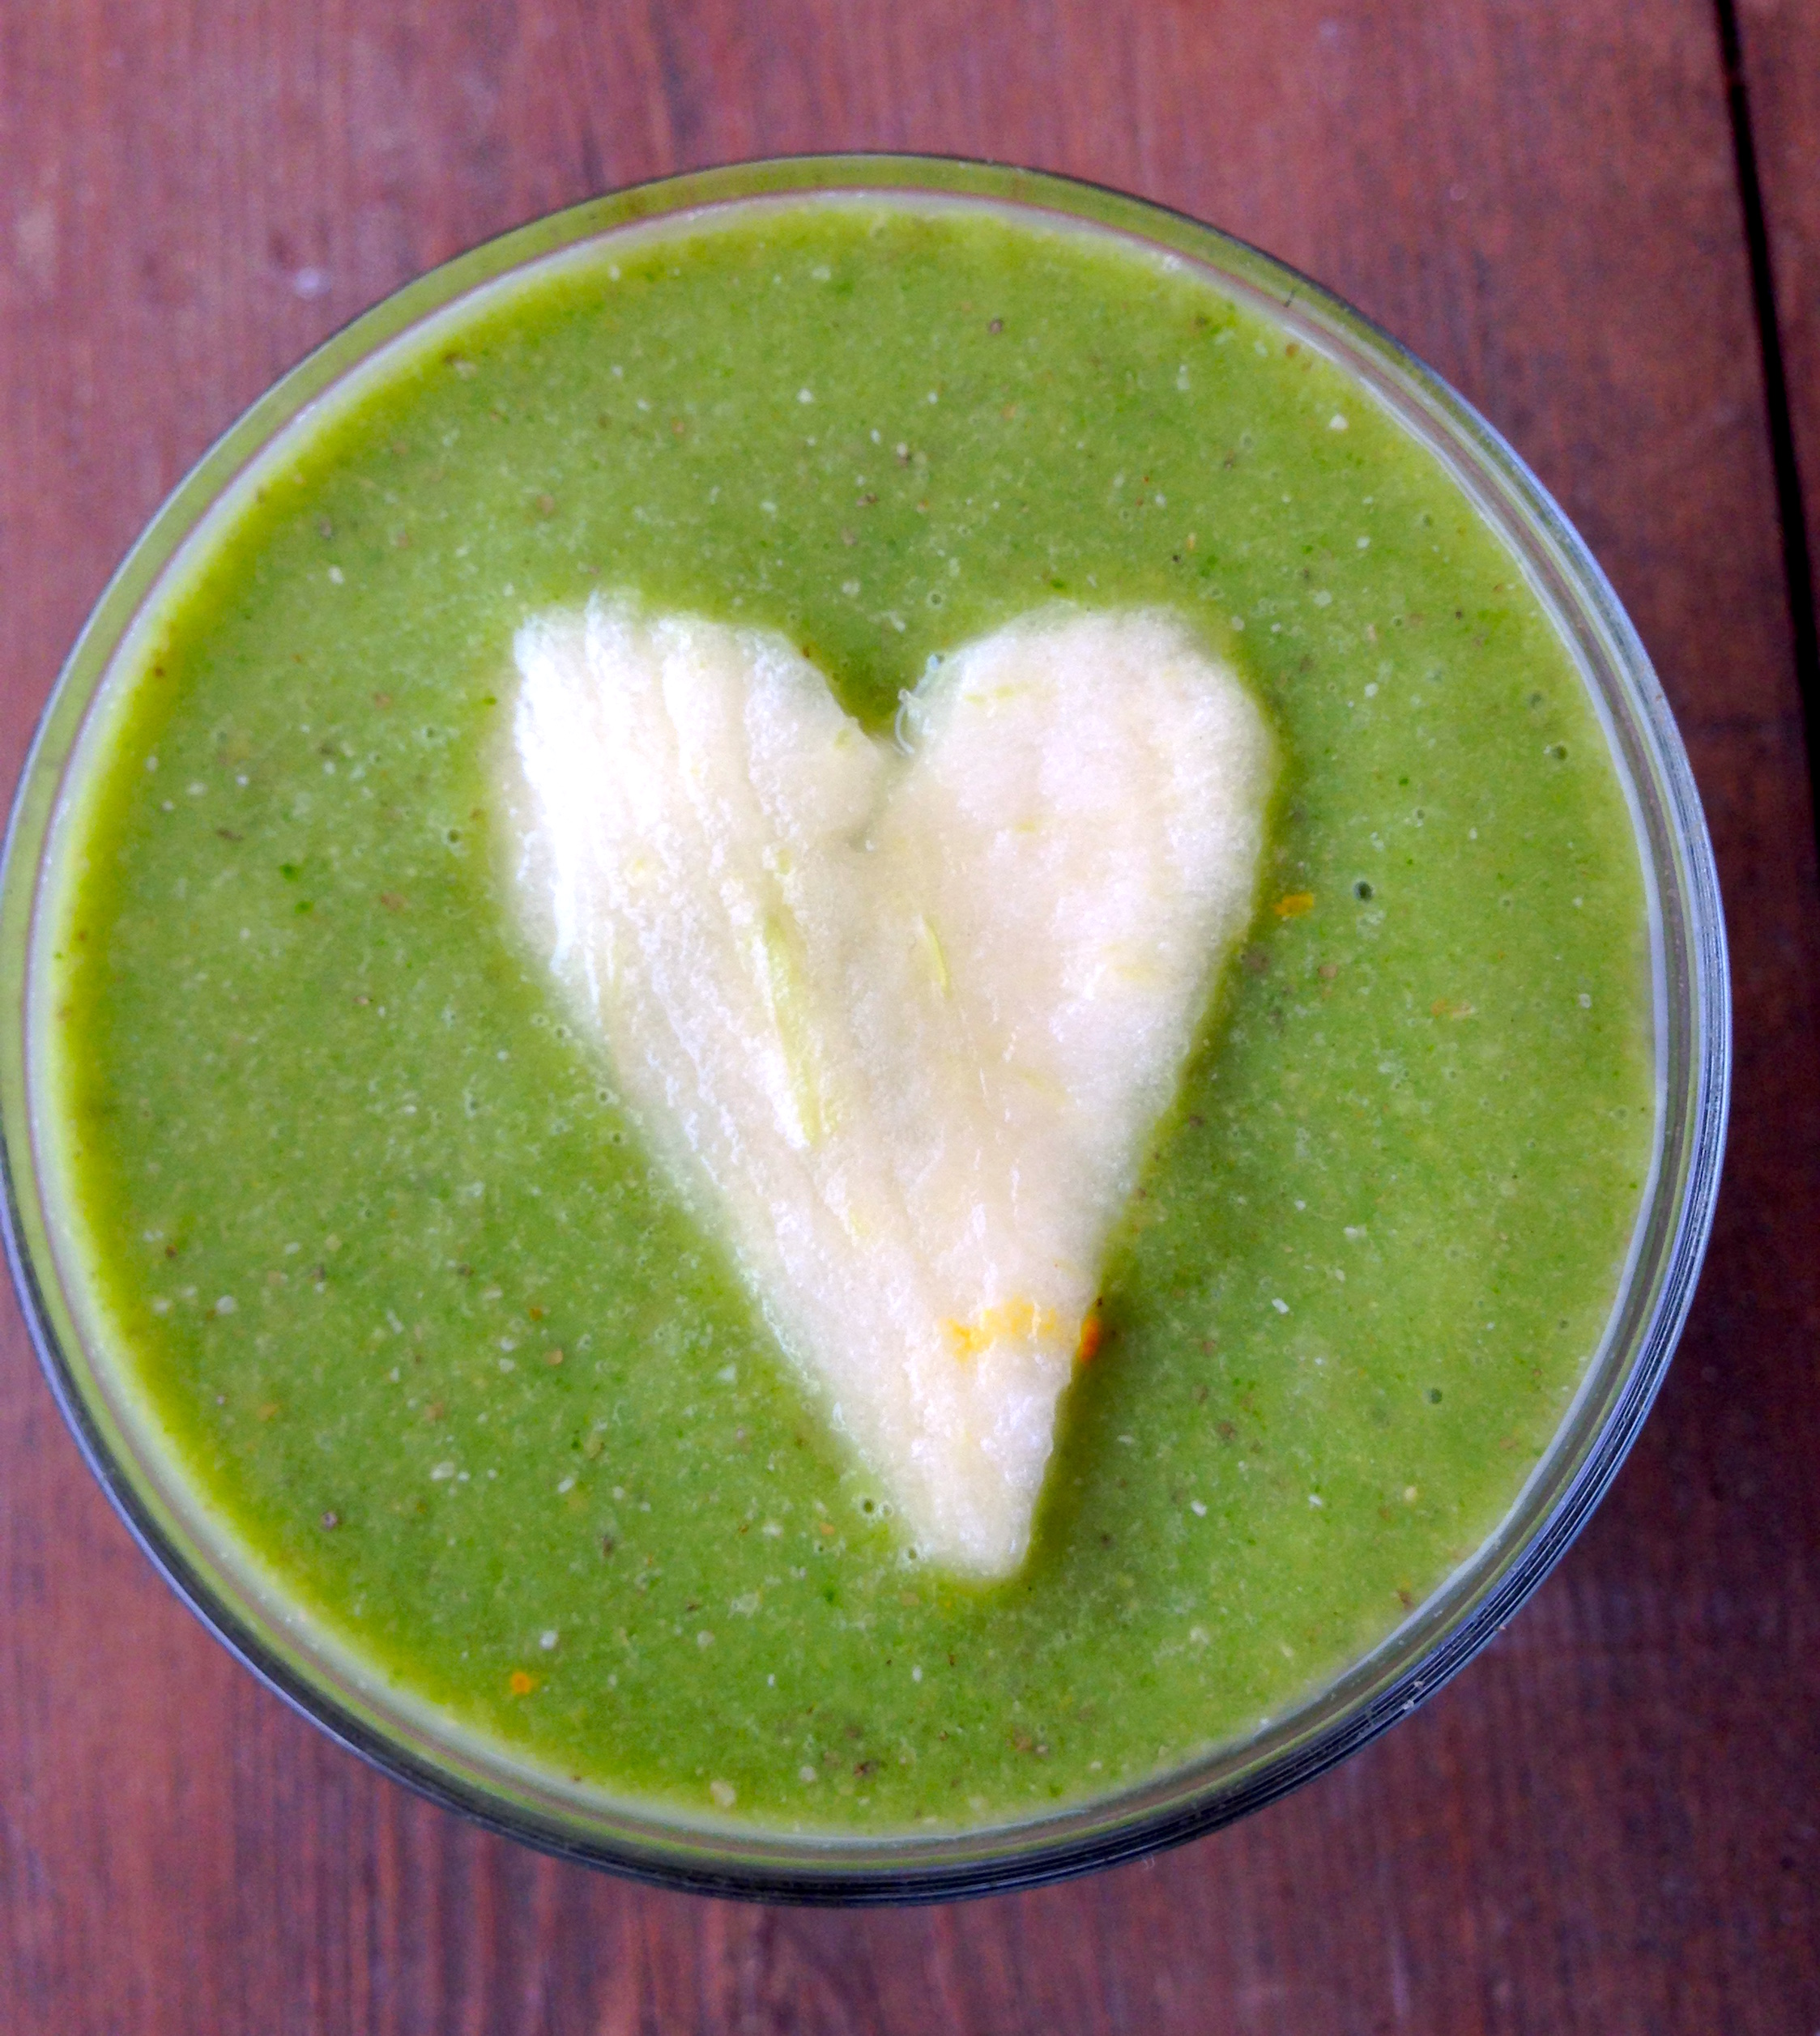 Special Green One, Smoothie, Energy Booster, Protein, Gluten Free, Dairy Free, Love